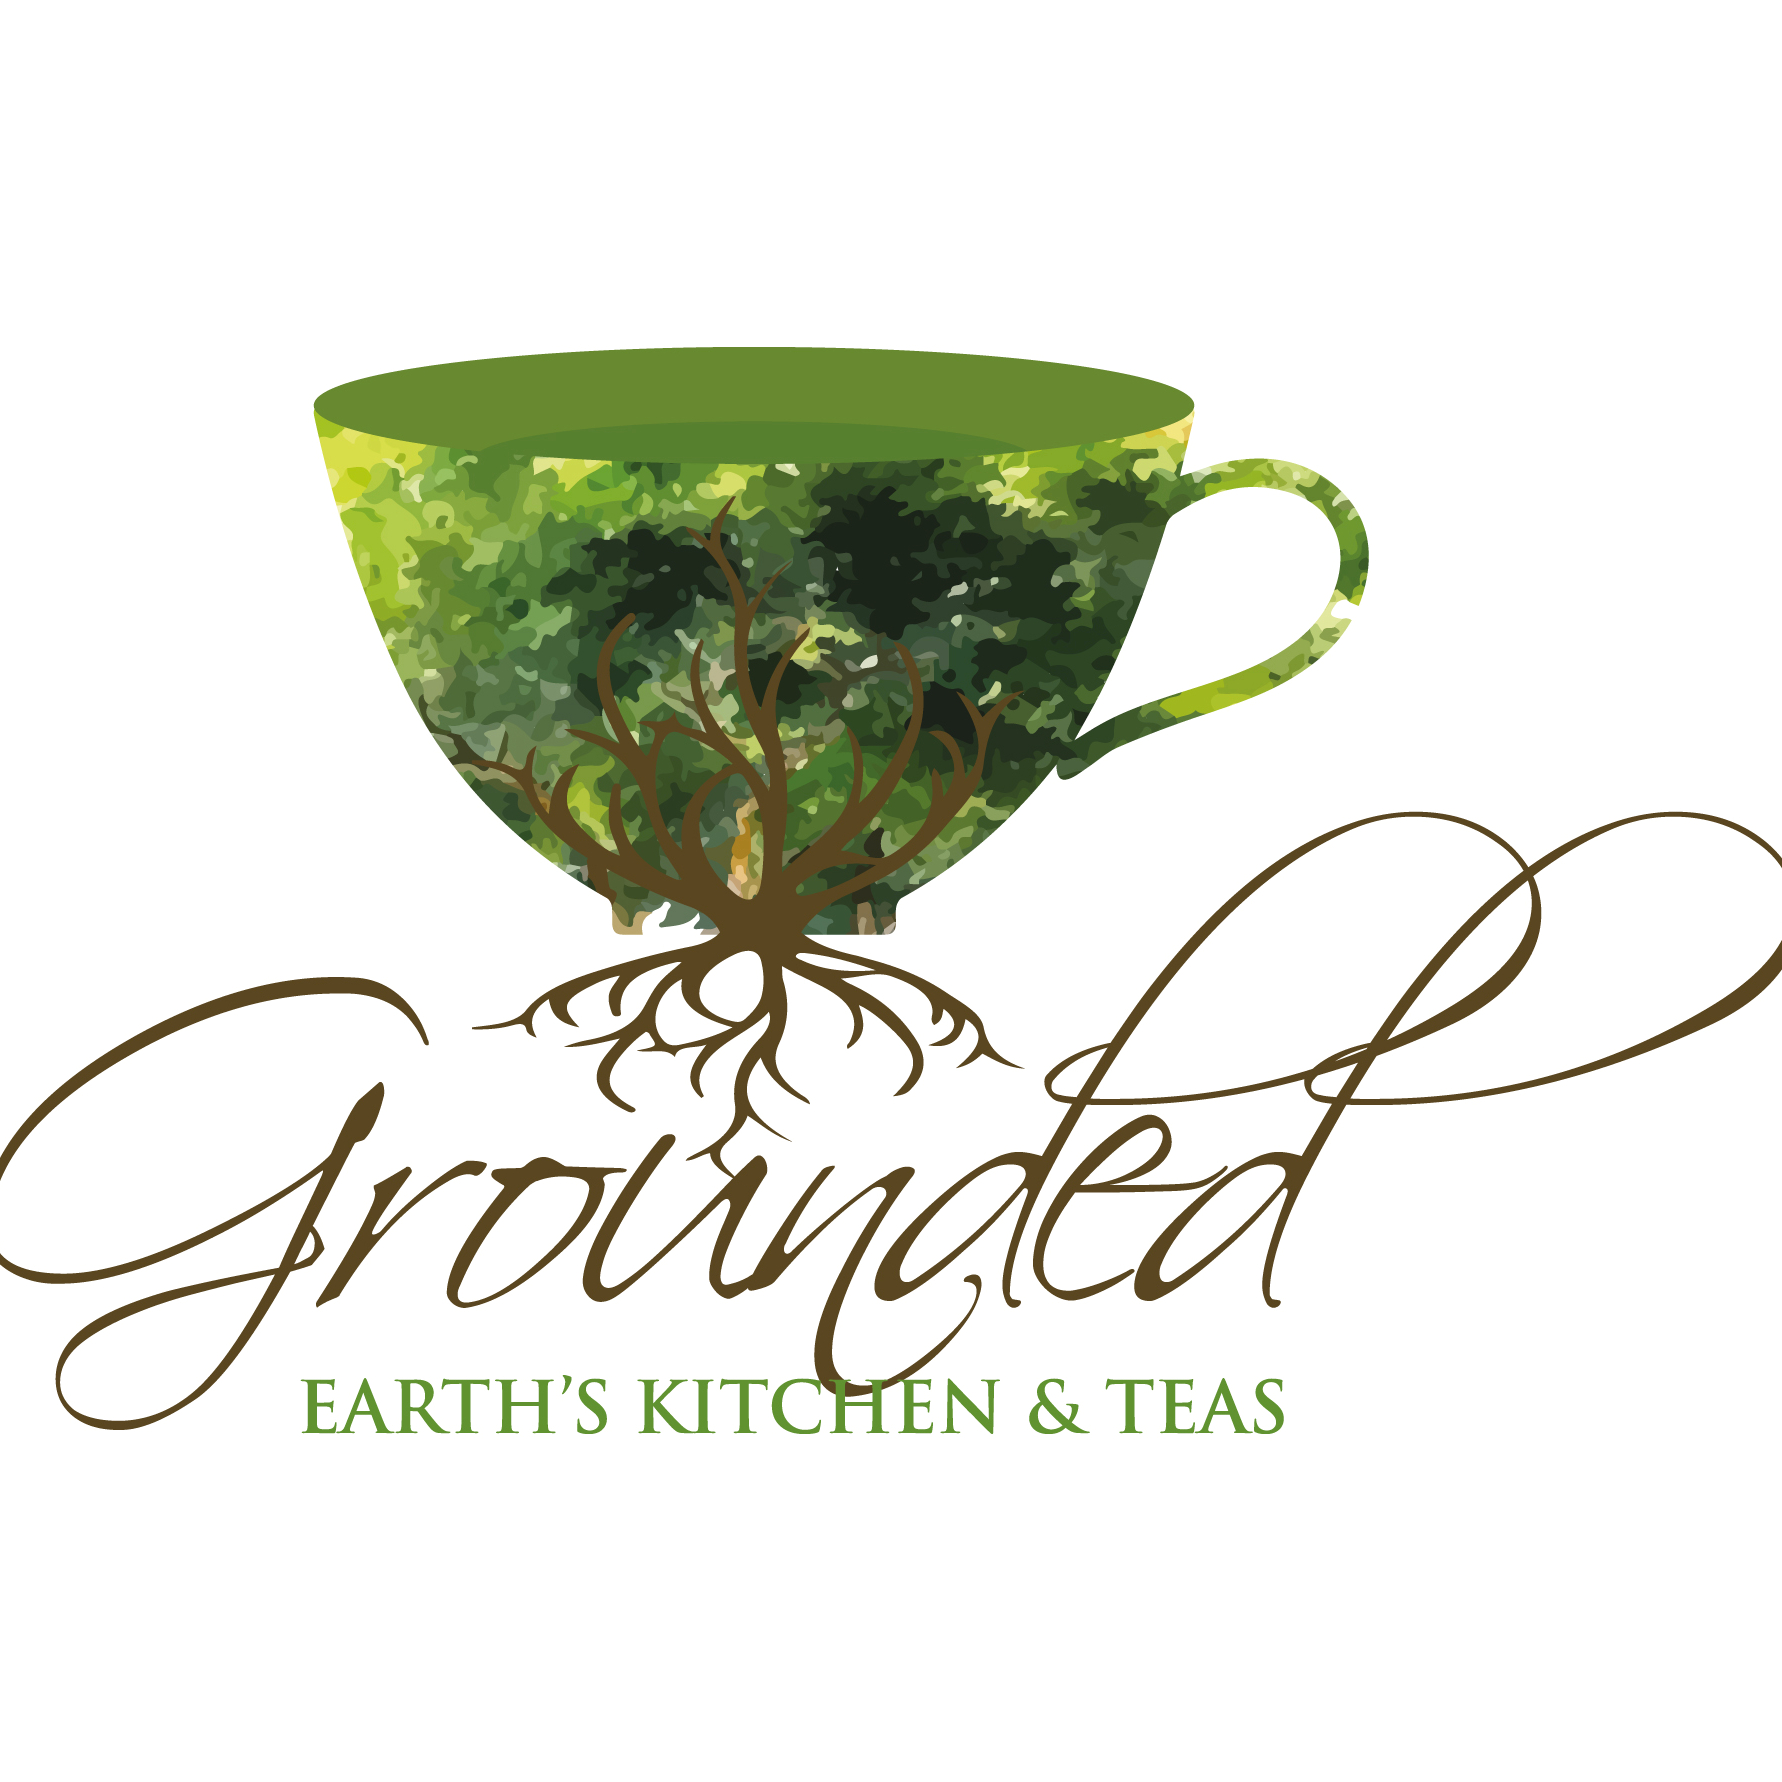 Grounded: Earth's Kitchen & Teas